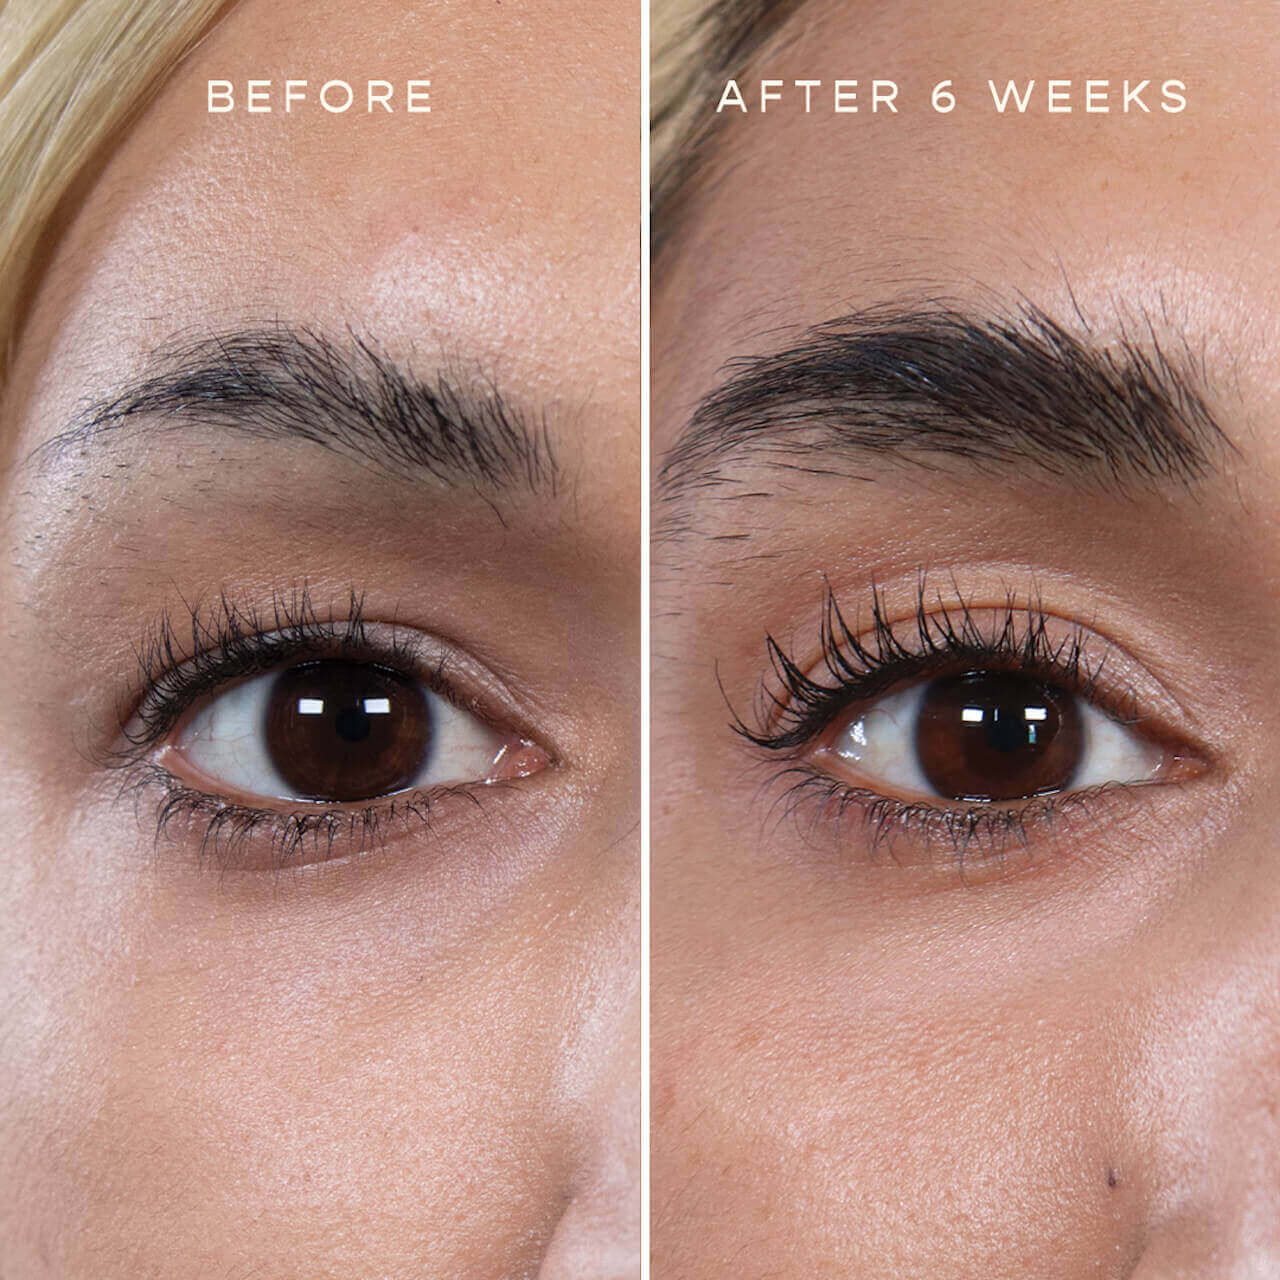 VEGAMOUR Lash & Brow Before and After